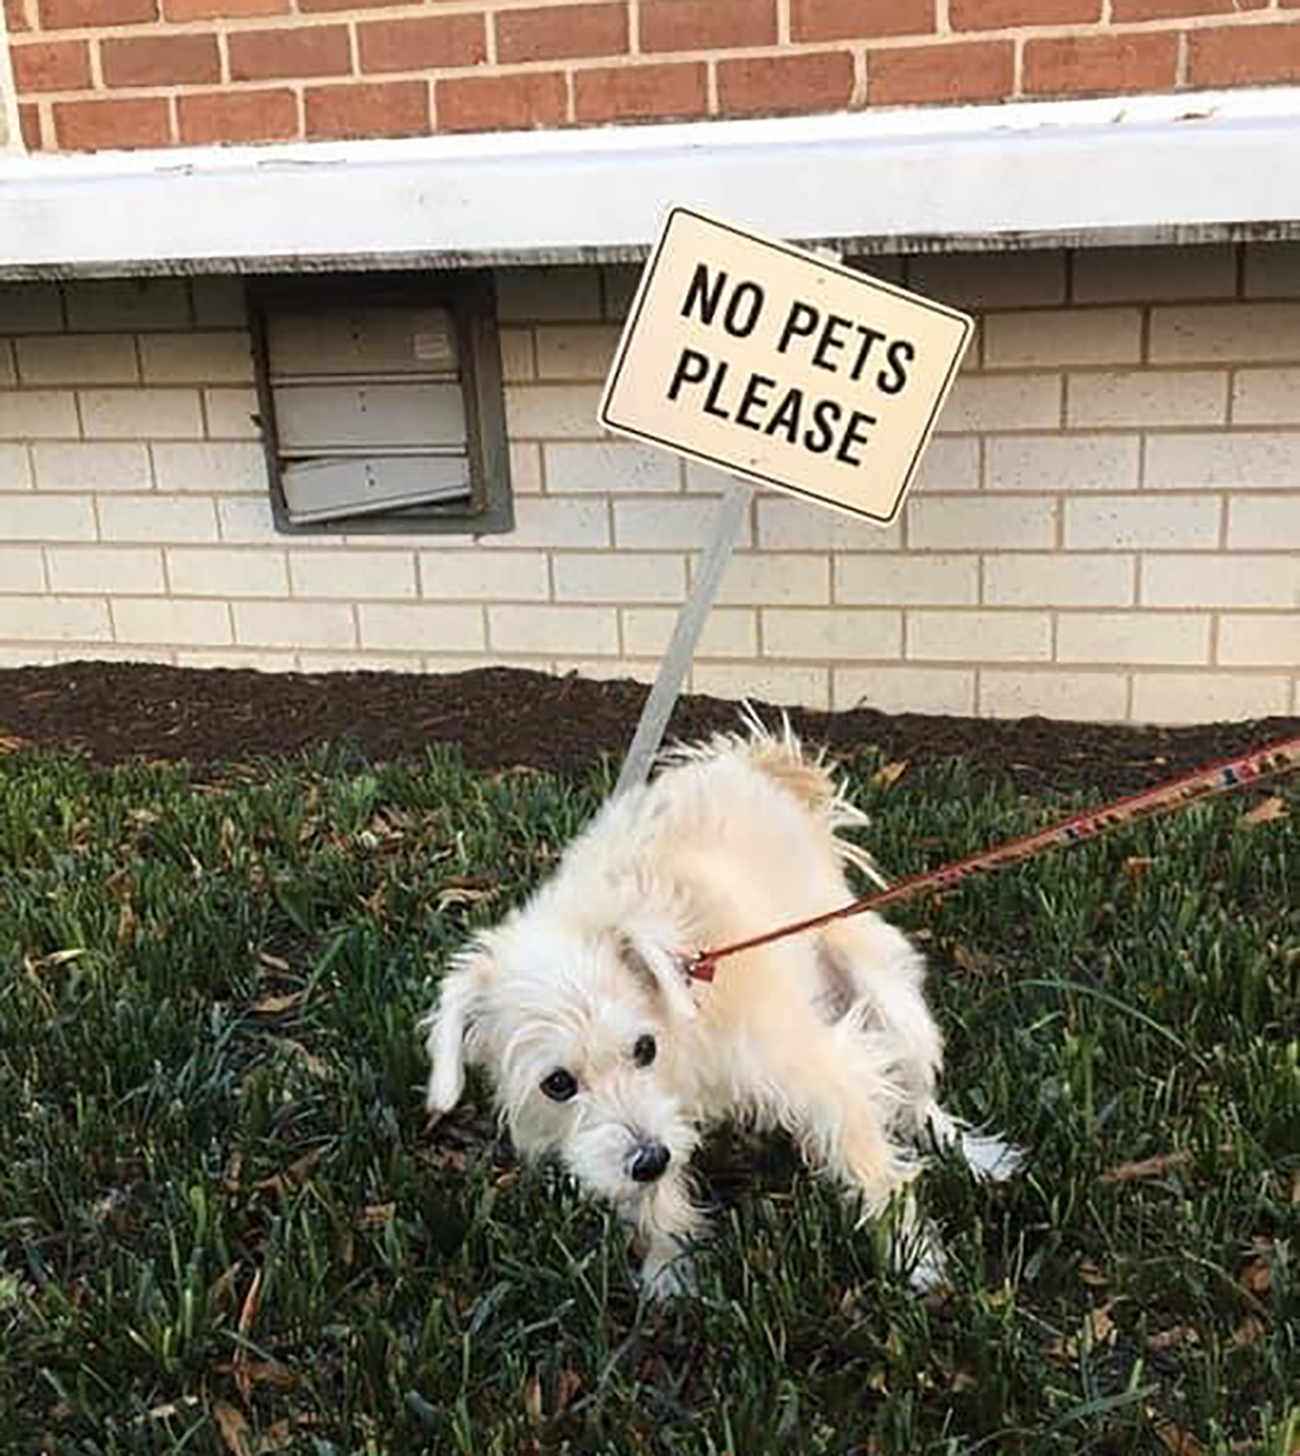 White dog tugs on lease in grass that is marked as No Pets Please